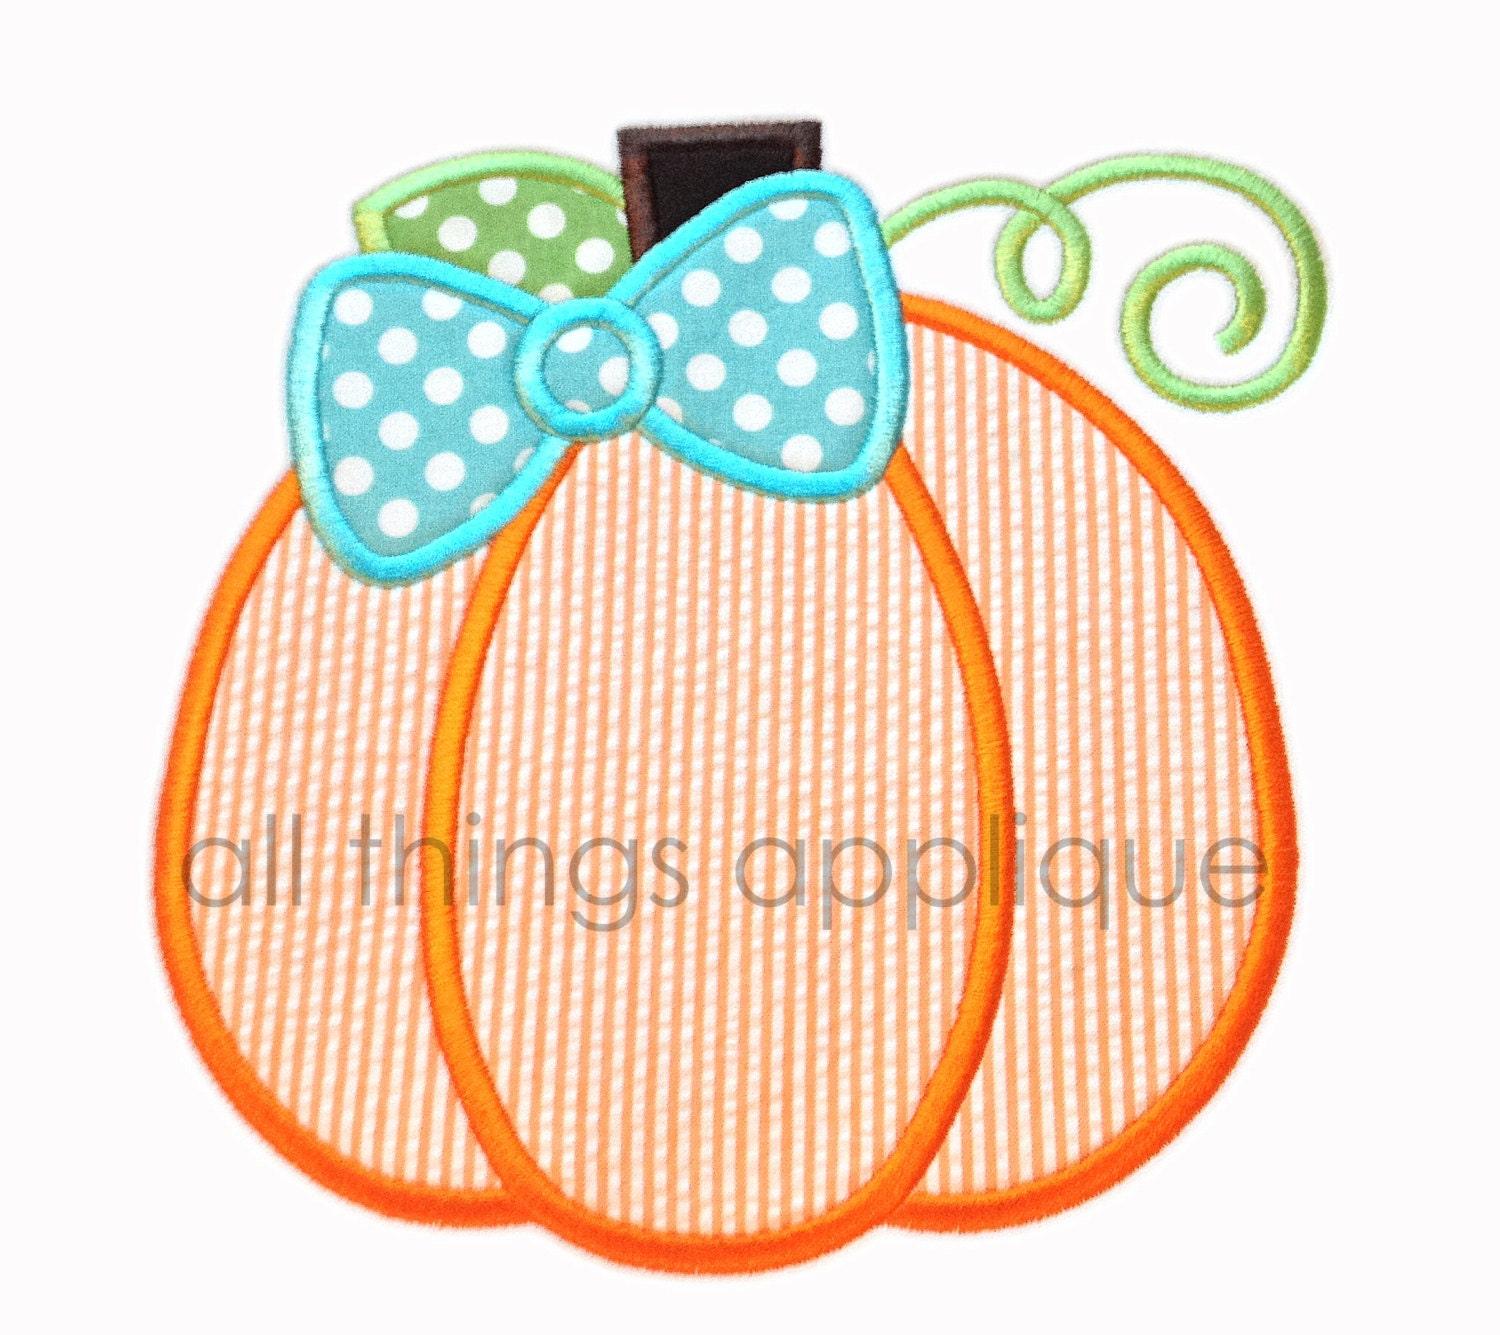 Bow pumpkin applique design sizes instant download